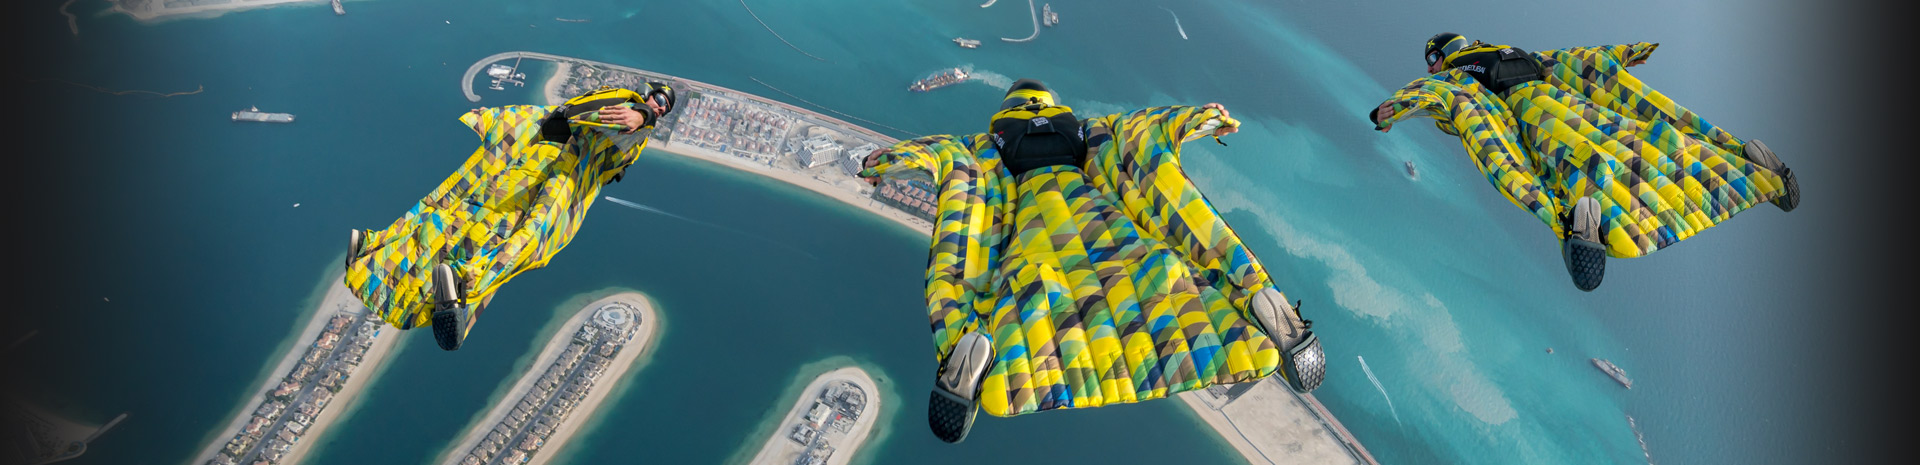 Freak 2 Wingsuit